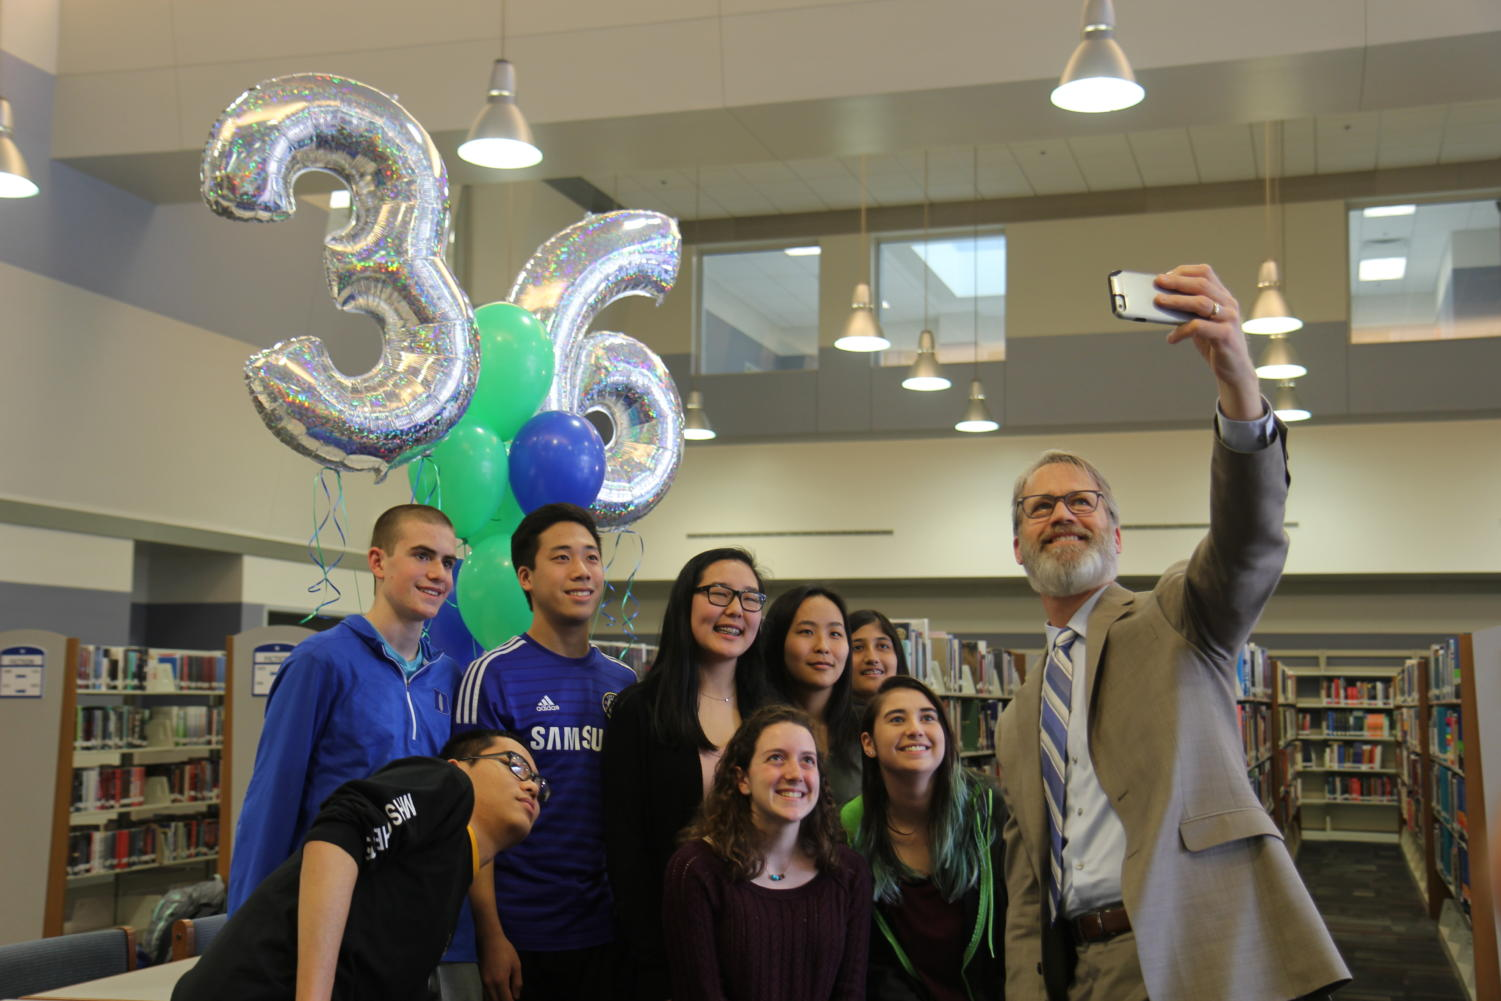 Superintendent Dr. Eric Knost snaps a selfie with the nine students who scored a 36 on the ACT: Jacob Besch, William An, Michelle Li, Rachel Pang, Sriya Kosaraju, Michael Wu, Brooke Davis and Sydney Ring.